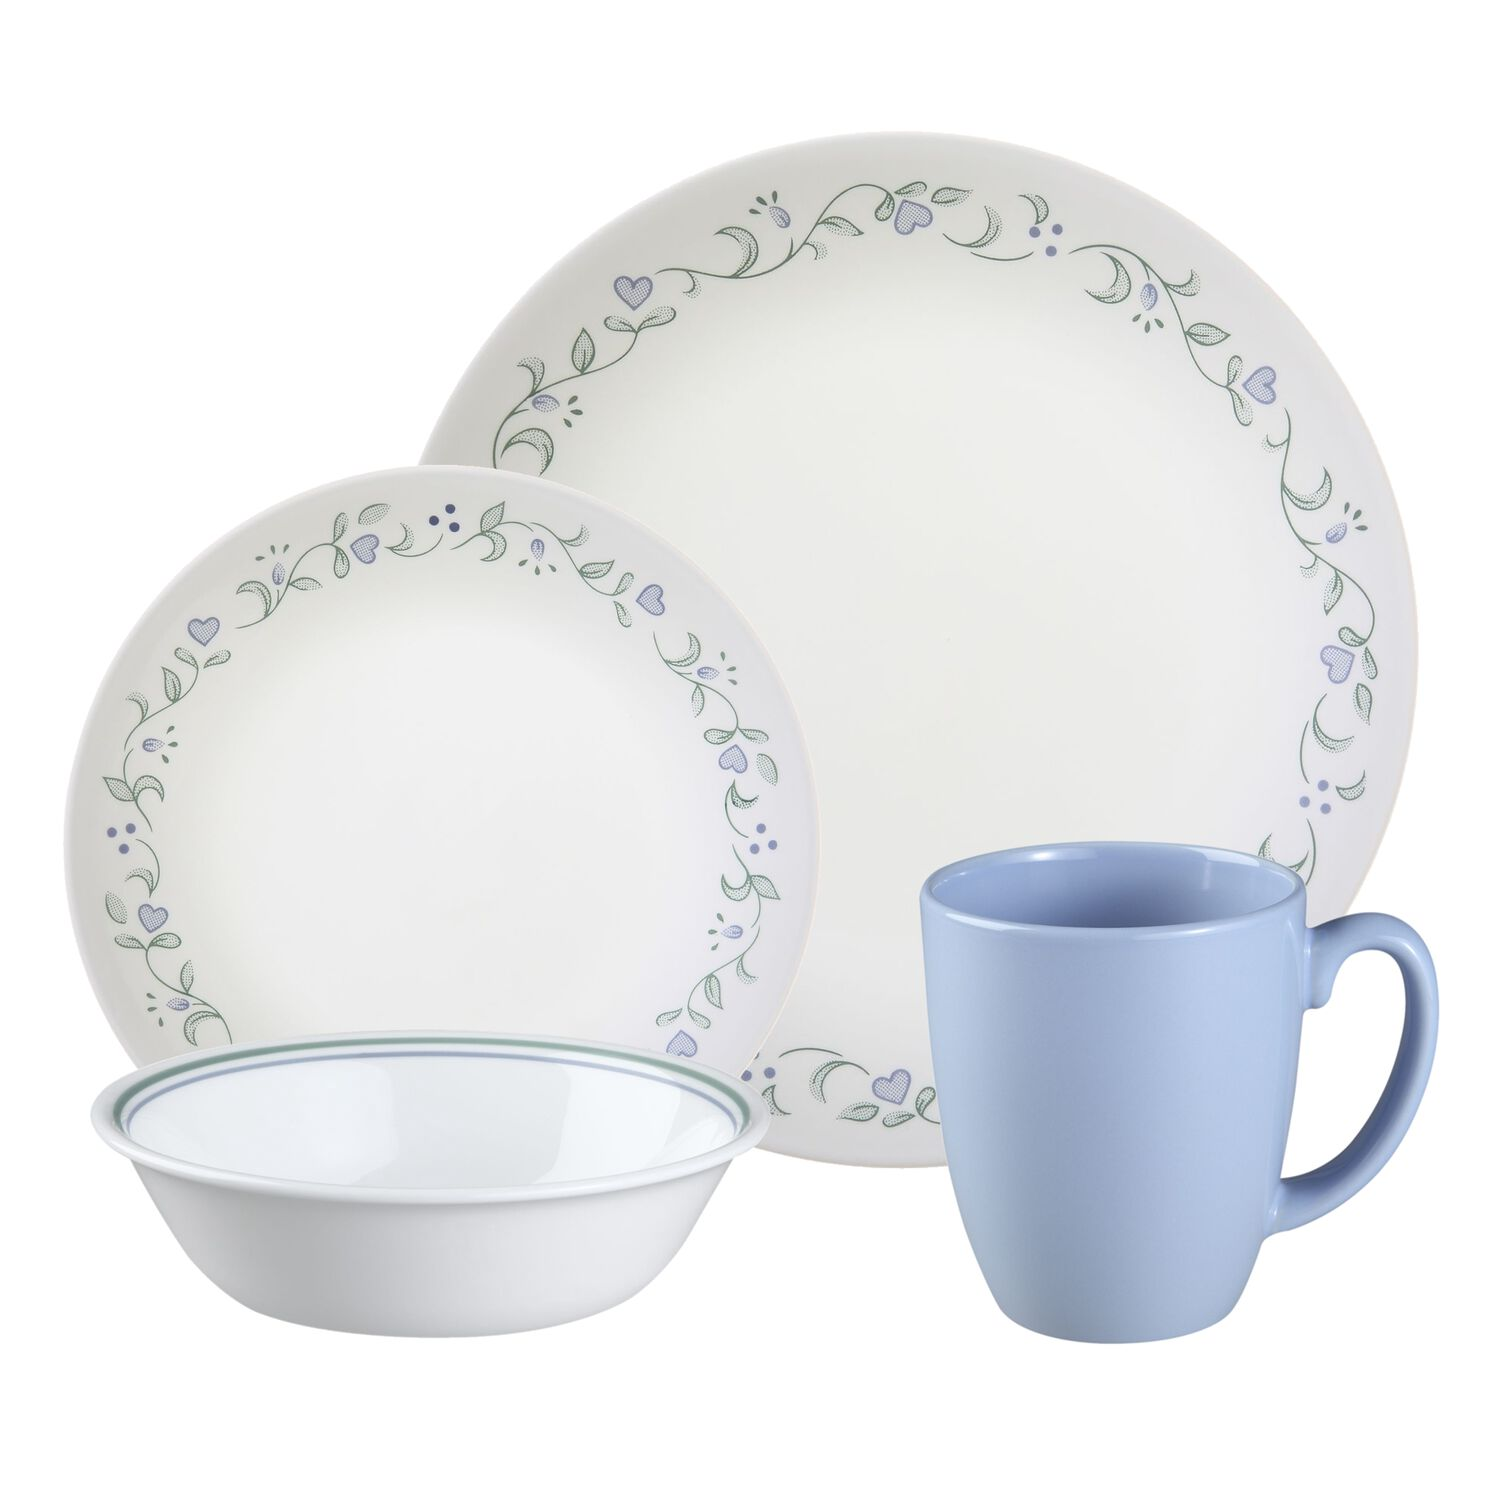 Corelle Dinnerware 16 Piece Set Of Dishes Kitchen Dining